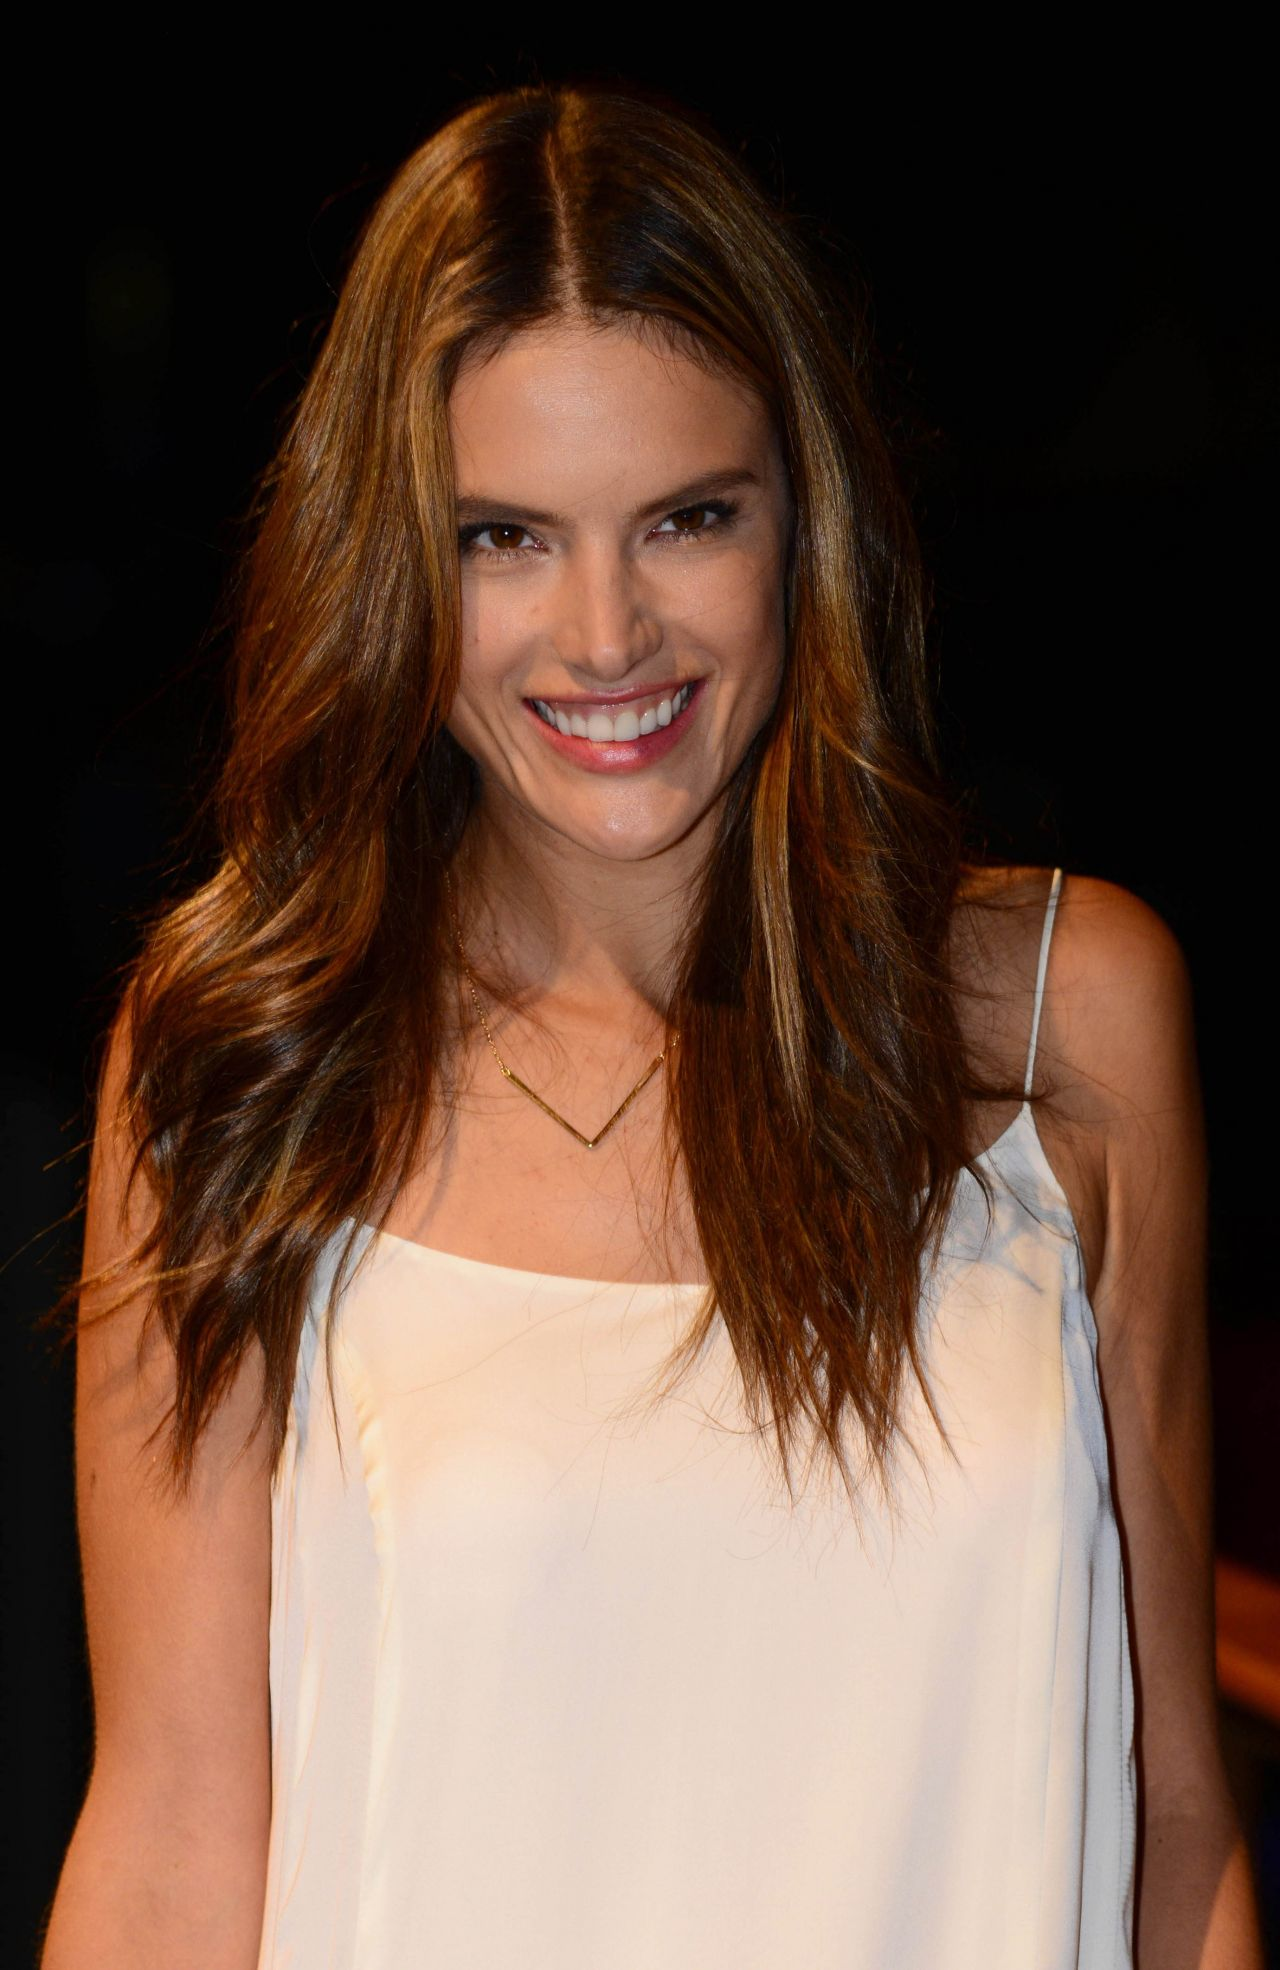 Alessandra Ambrosio - Mango 080 Fashion Show in Barcelona, January 2014